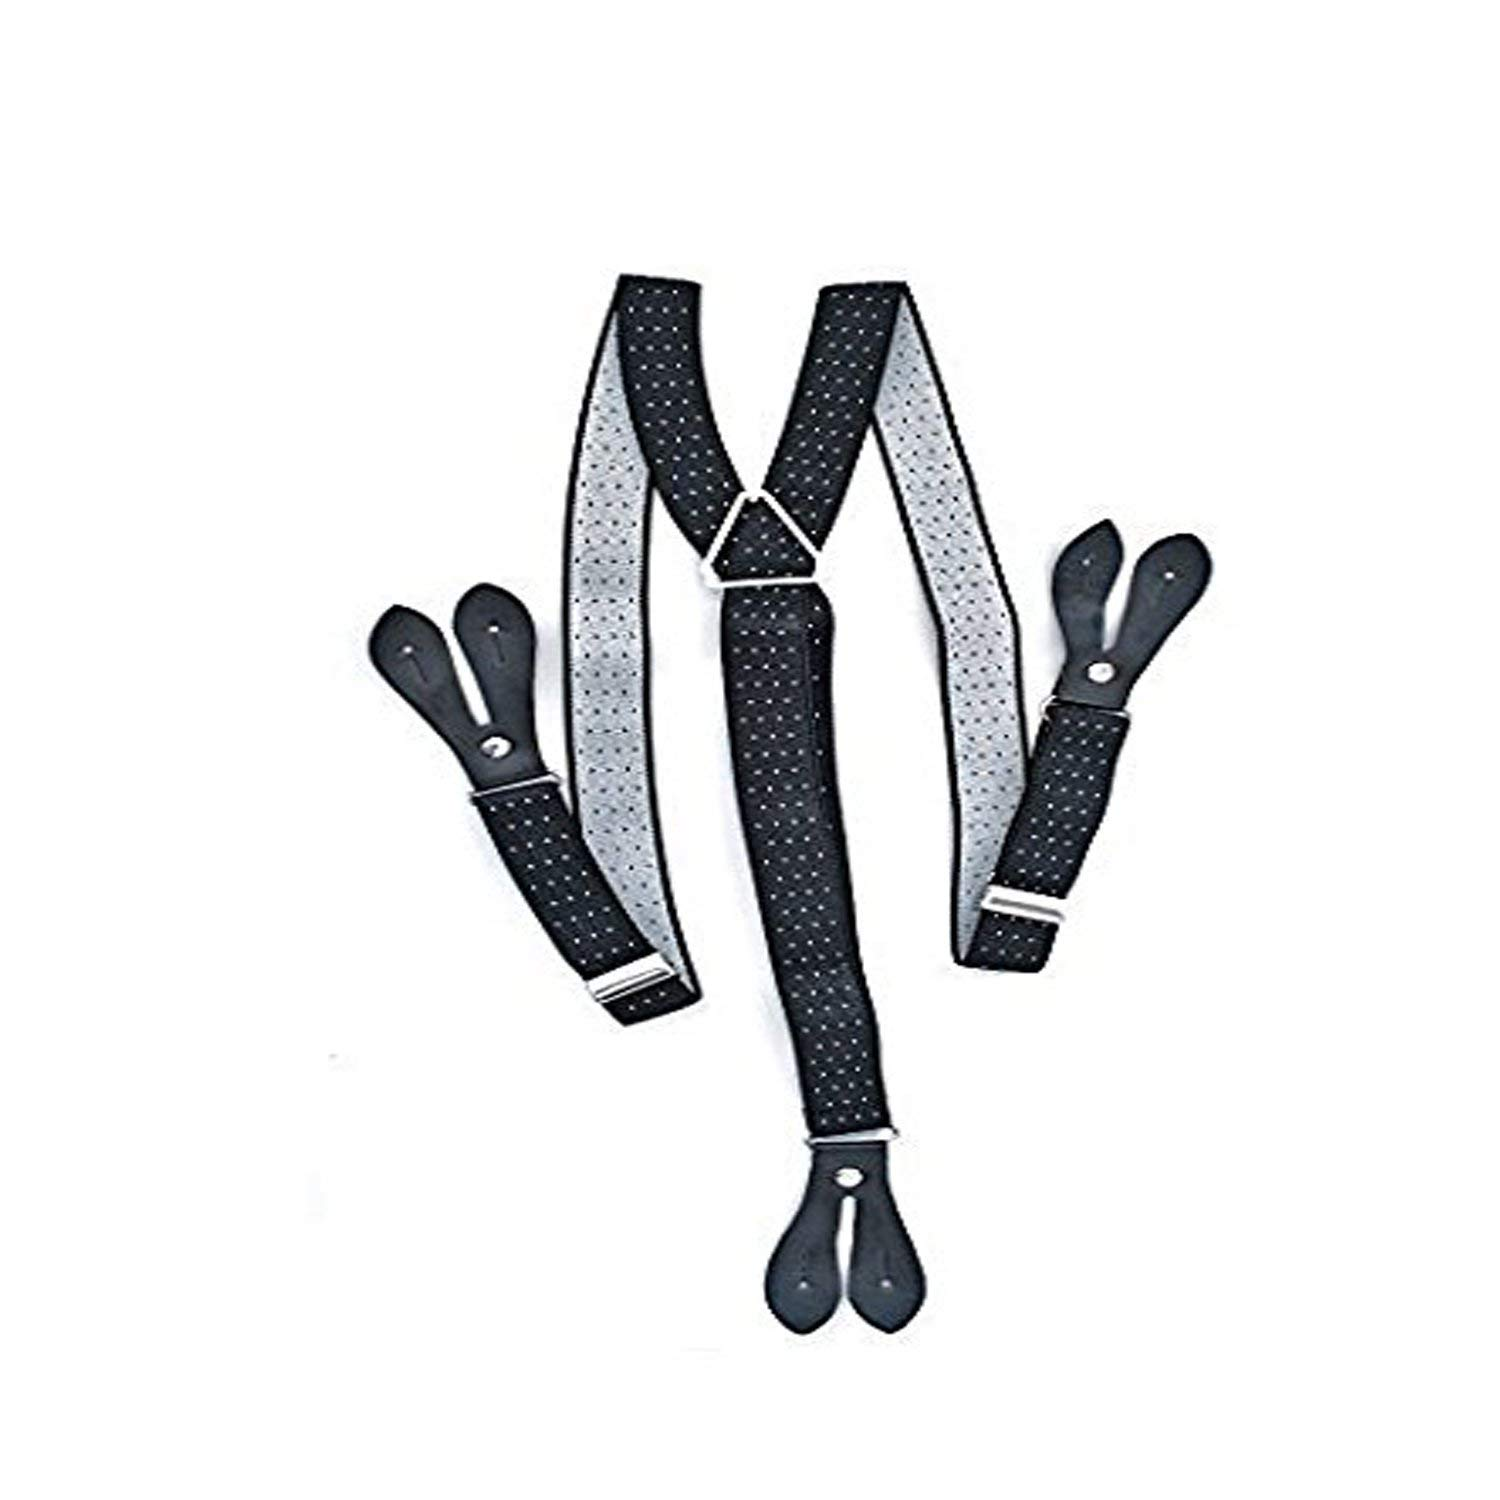 c15b0074e Get Quotations · Mans Braces Navy With White Dot Button Hole Y Shaped Back